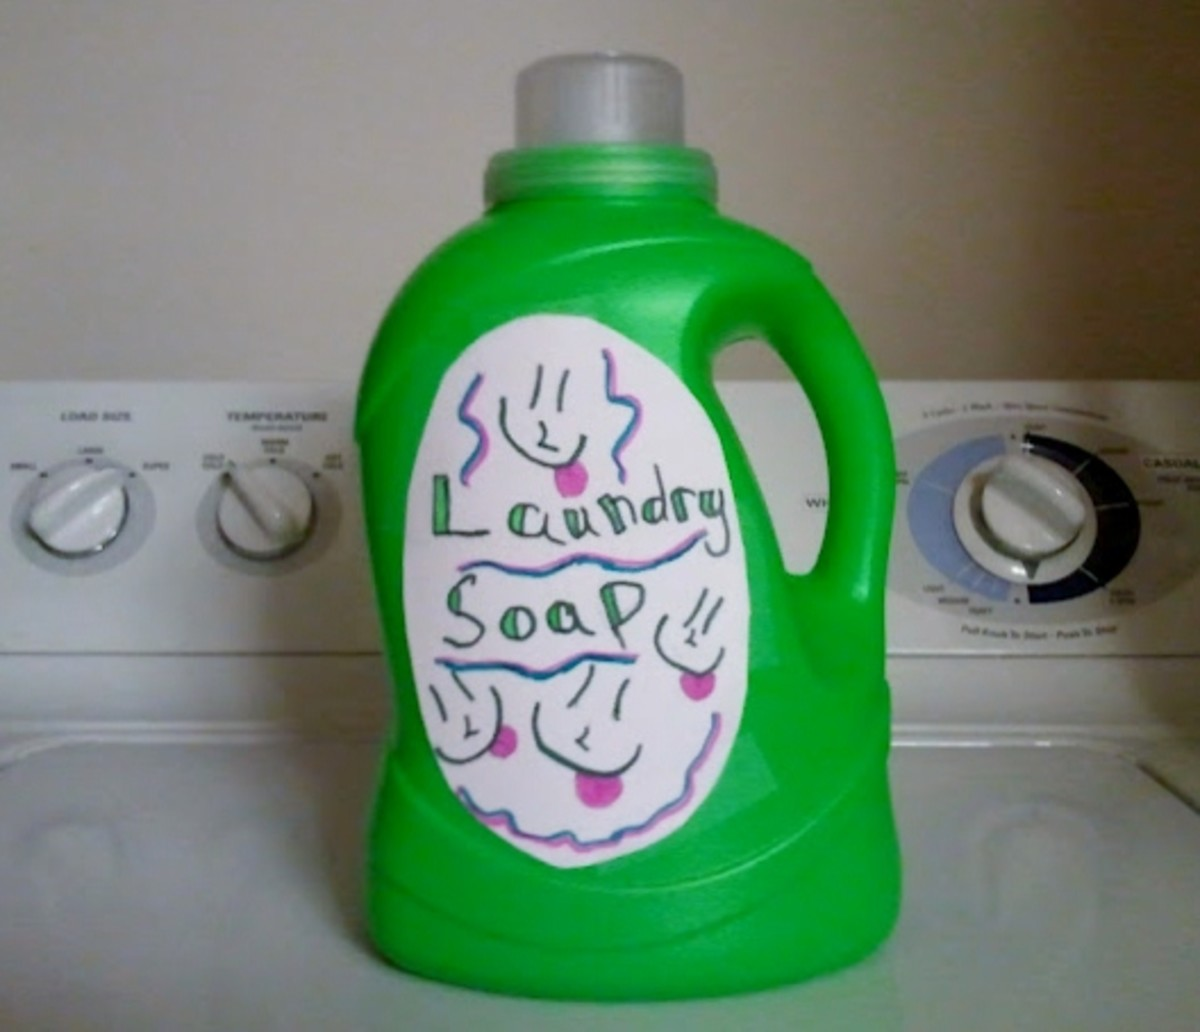 Does homemade laundry soap work?